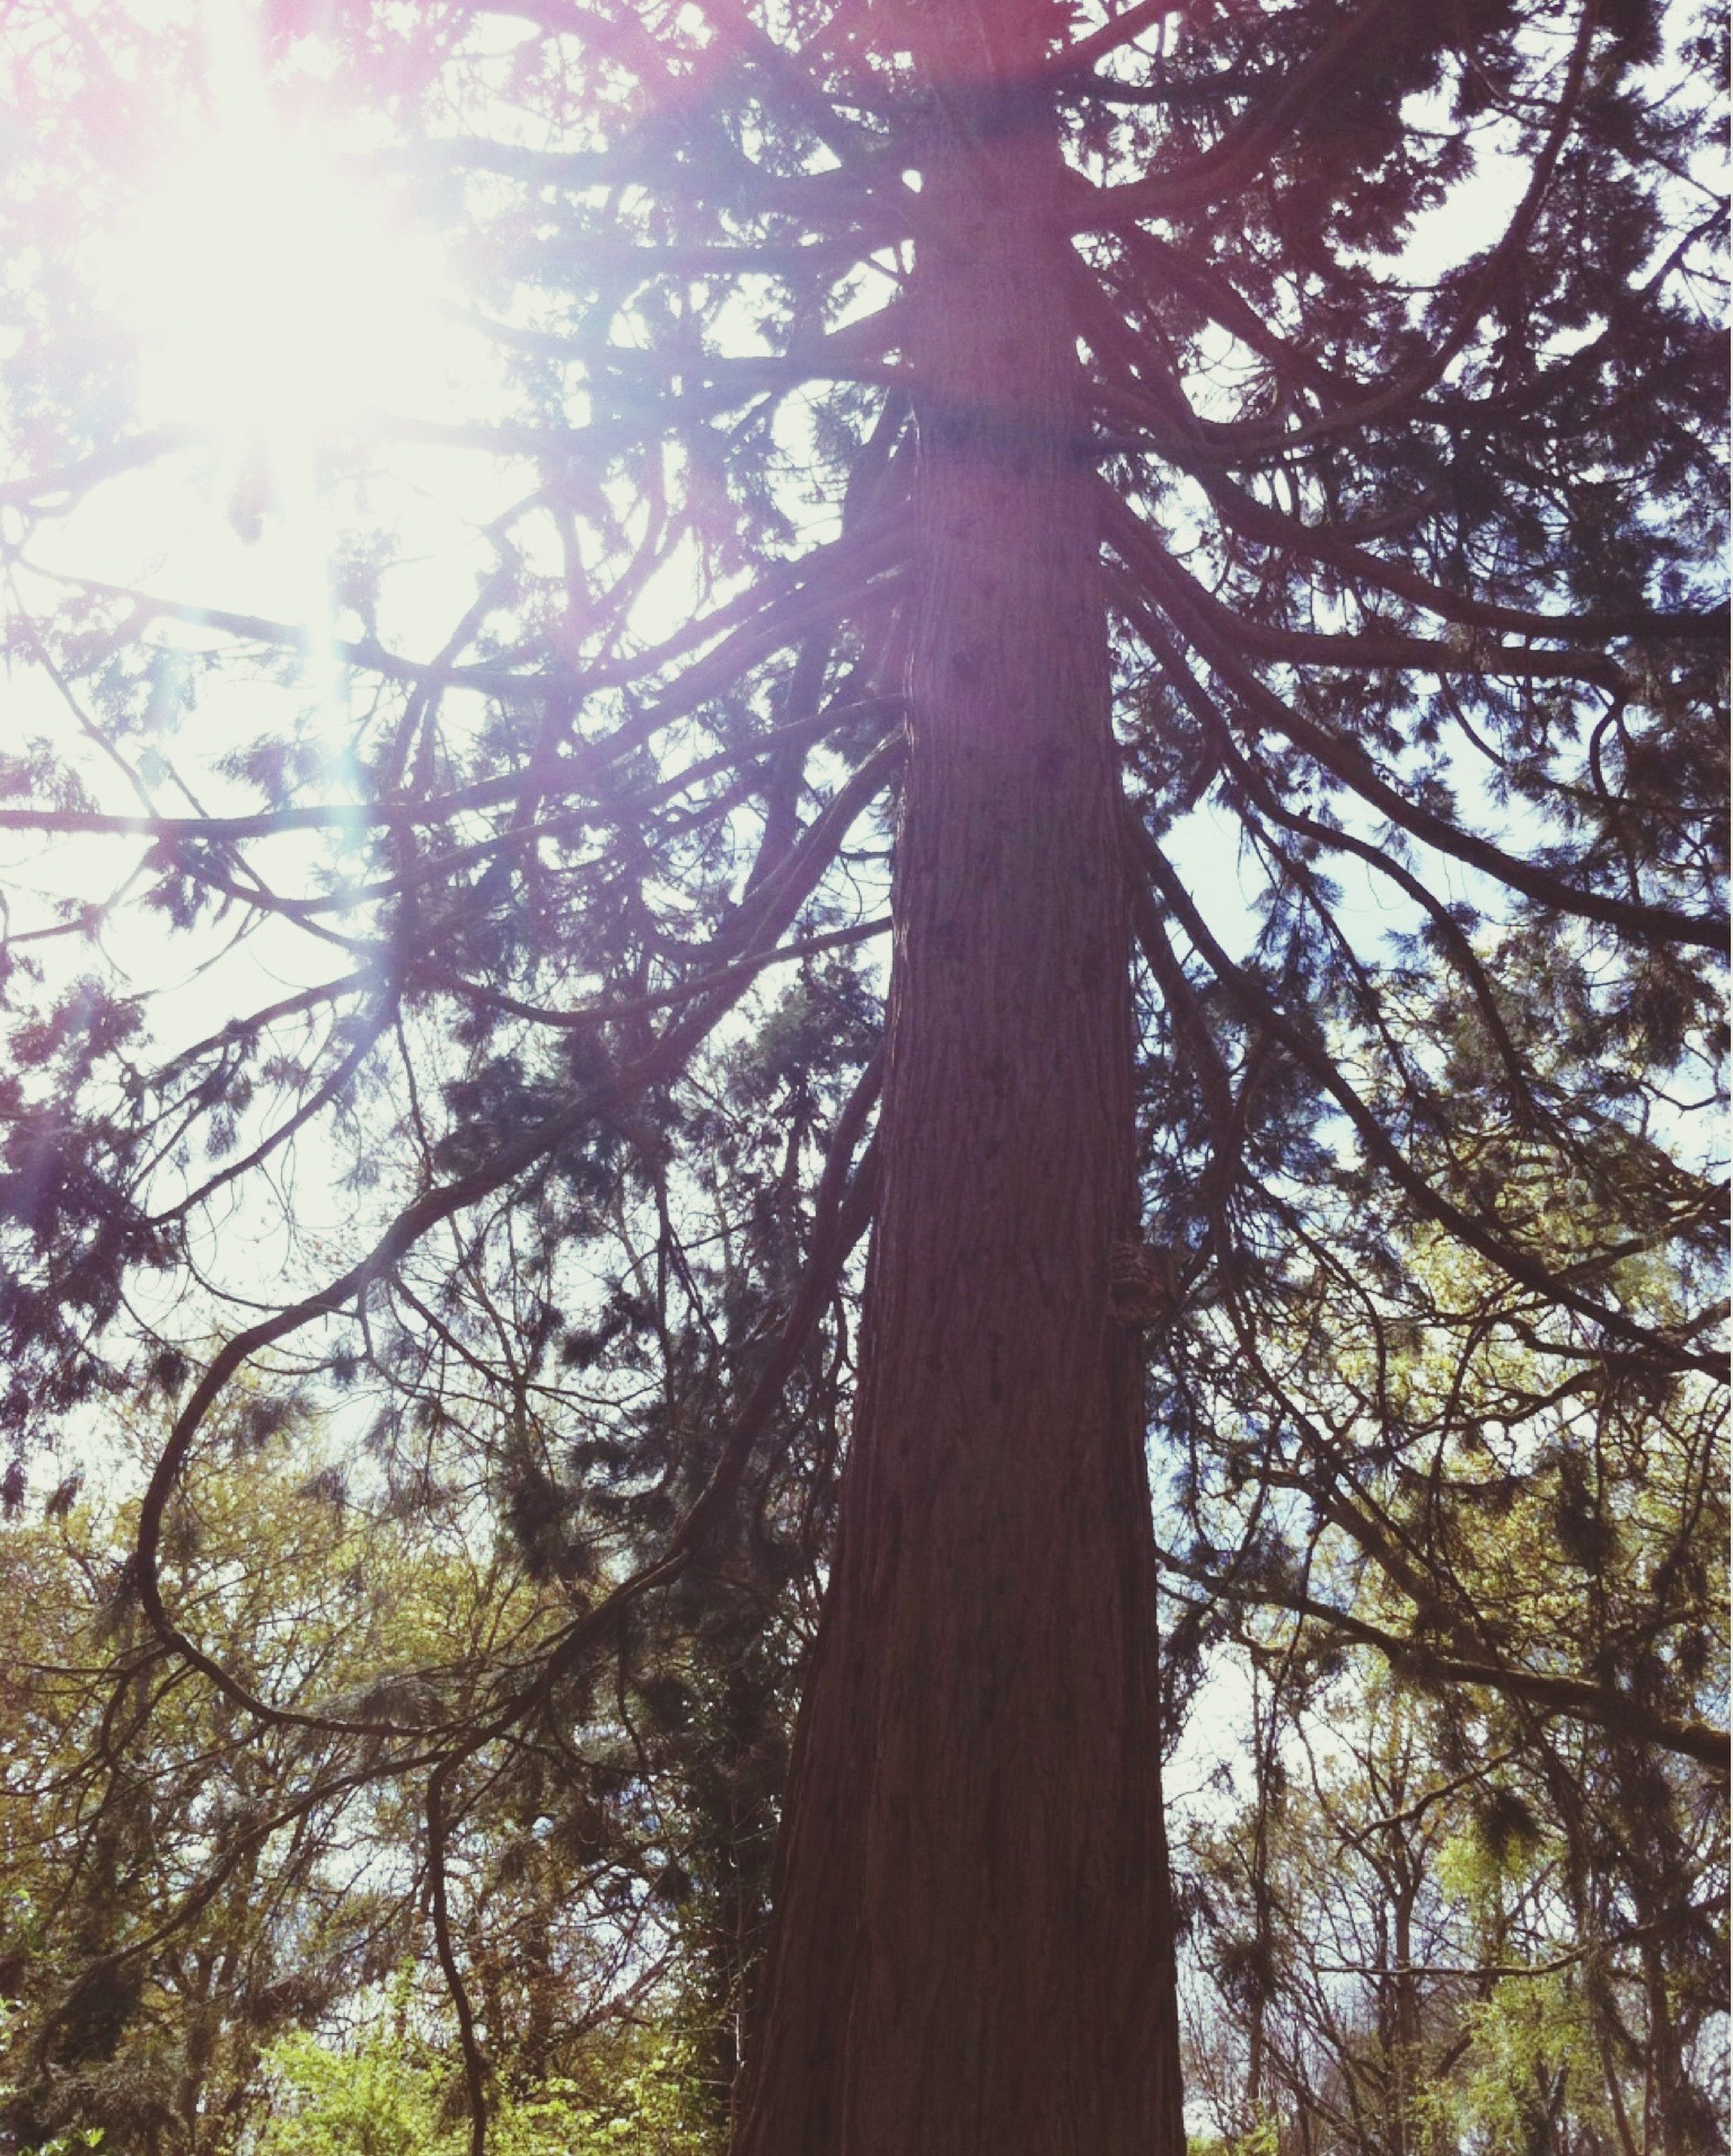 tree, low angle view, sun, sunbeam, sunlight, growth, branch, lens flare, nature, tranquility, tree trunk, beauty in nature, sky, sunny, day, outdoors, bright, no people, scenics, forest